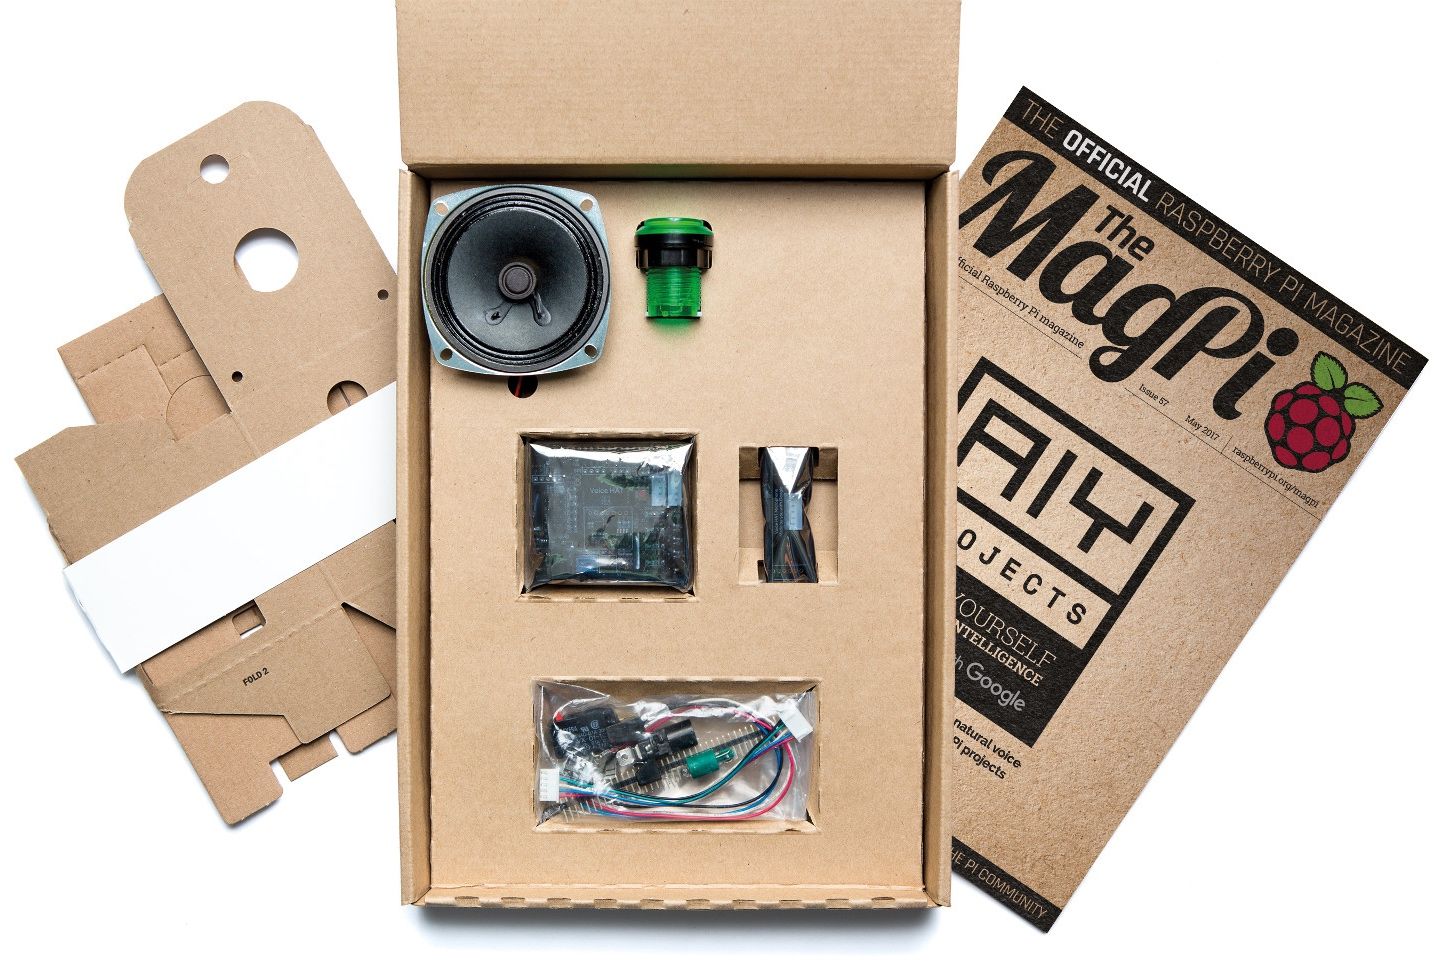 The MagPi Issue 57 Comes with Google Voice Interaction Kit